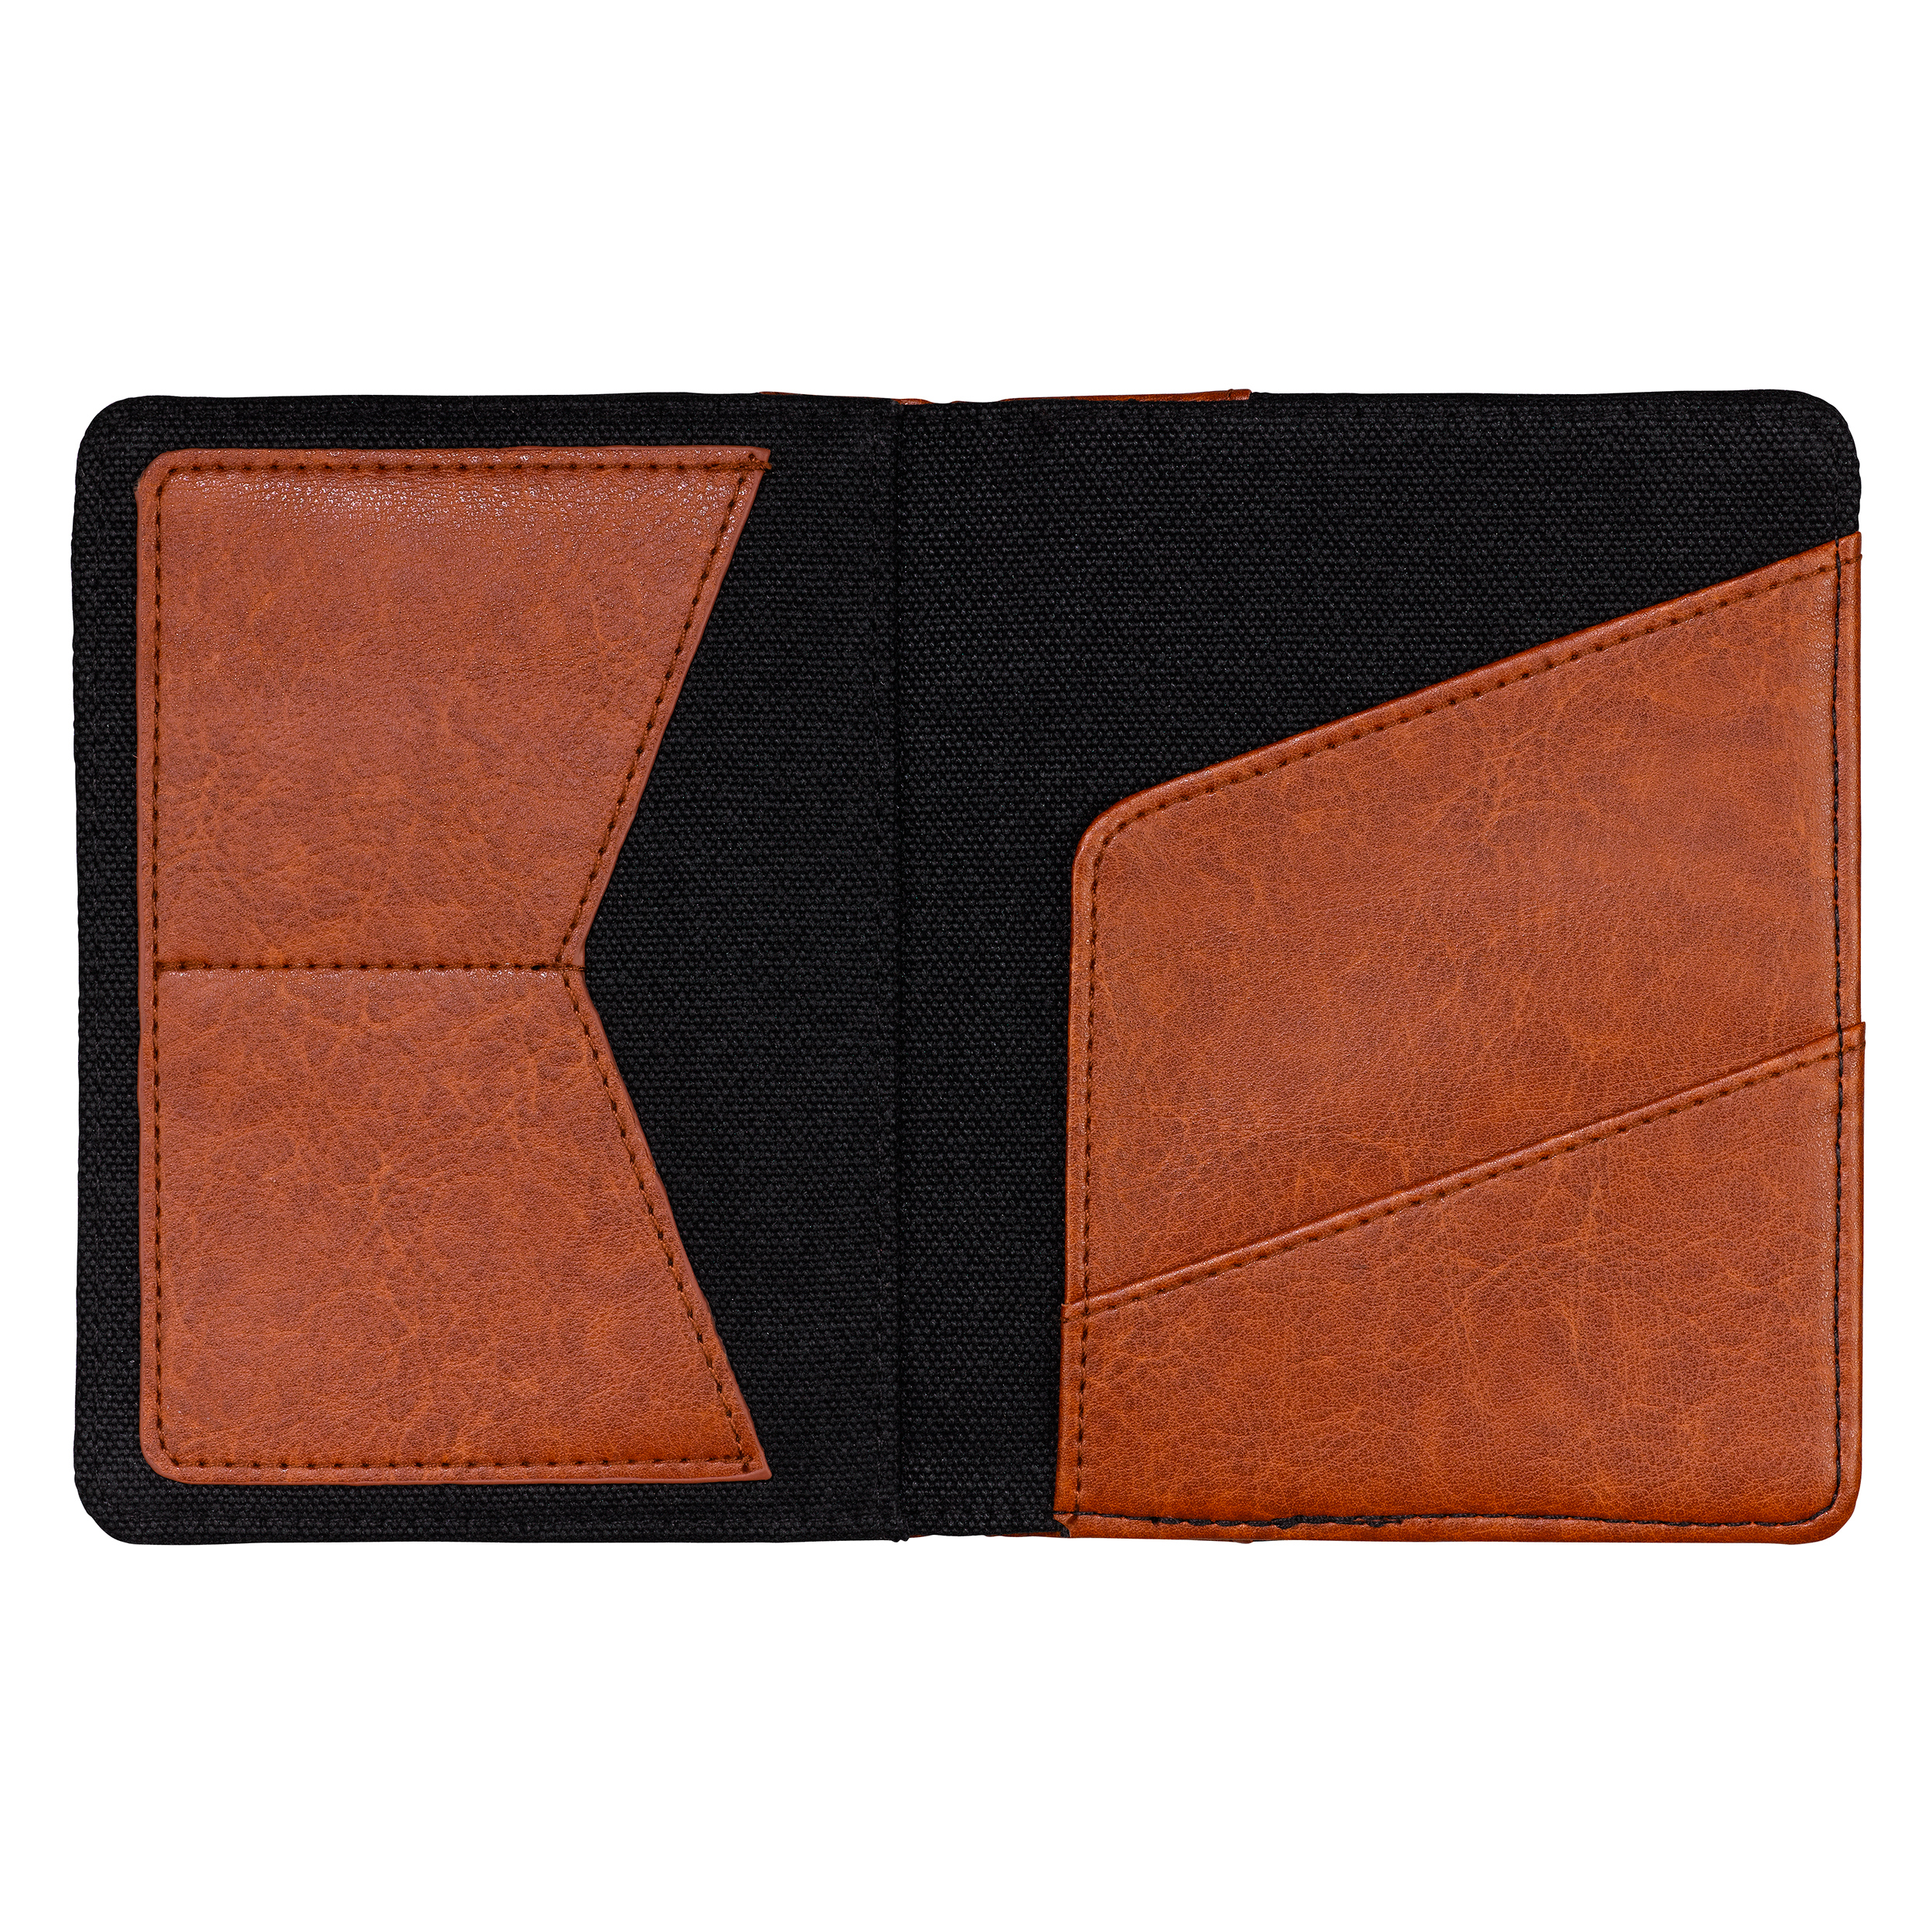 Charcoal Travel Wallet